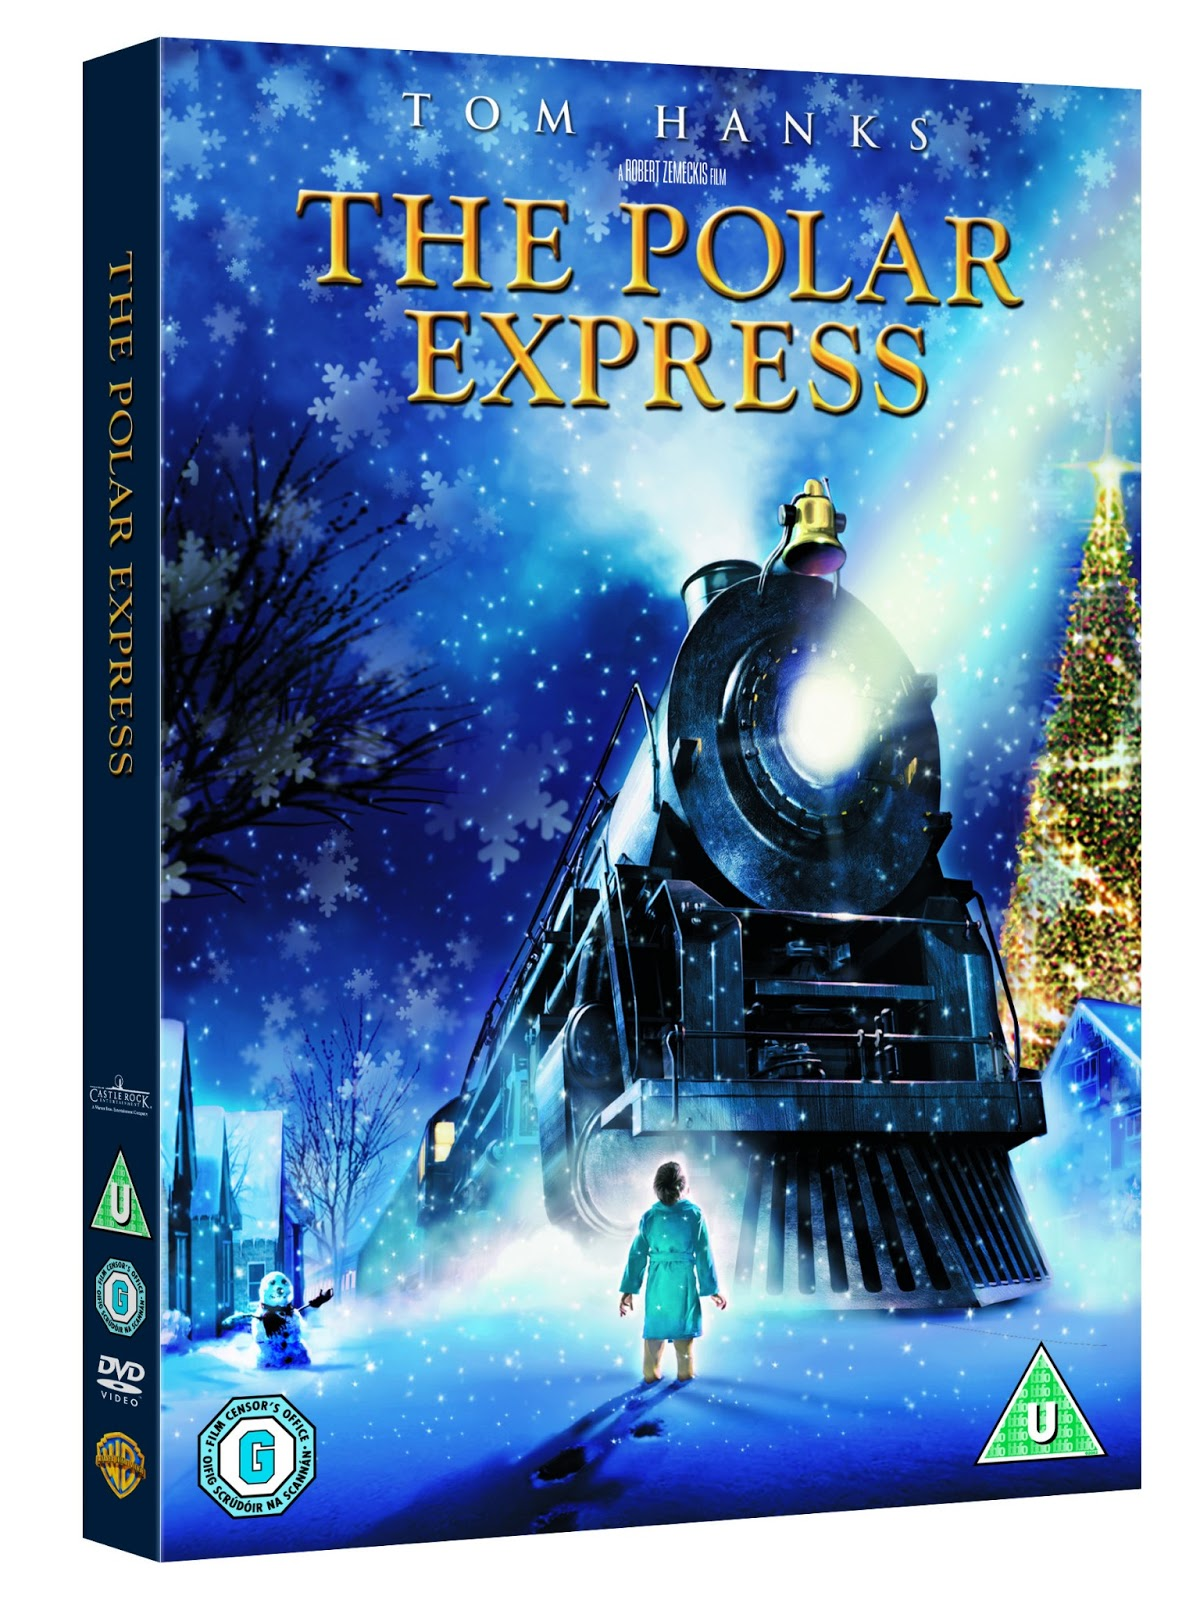 All Aboard The Polar Express In 3d